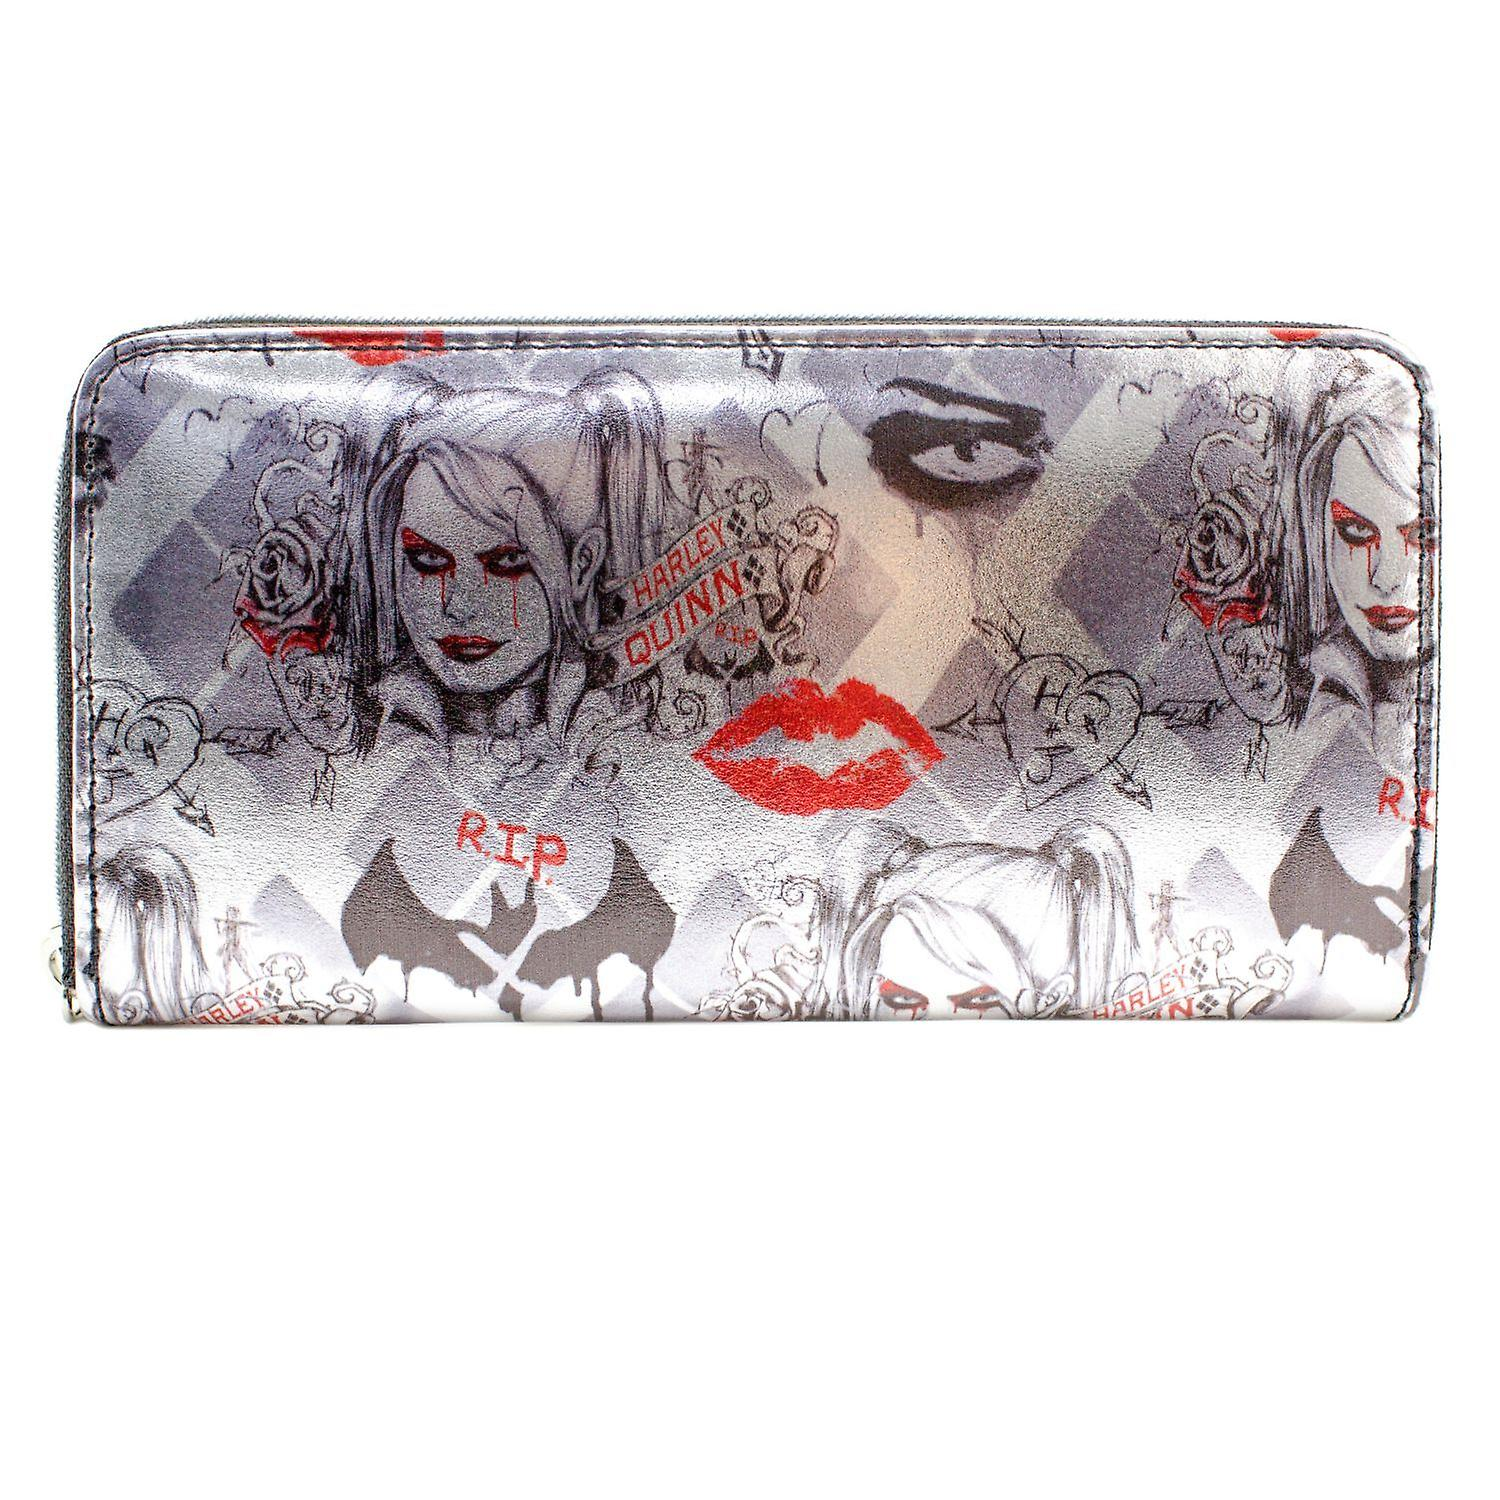 DC Suicide Squad Harley Quinn RIP Coin & Card Clutch Purse